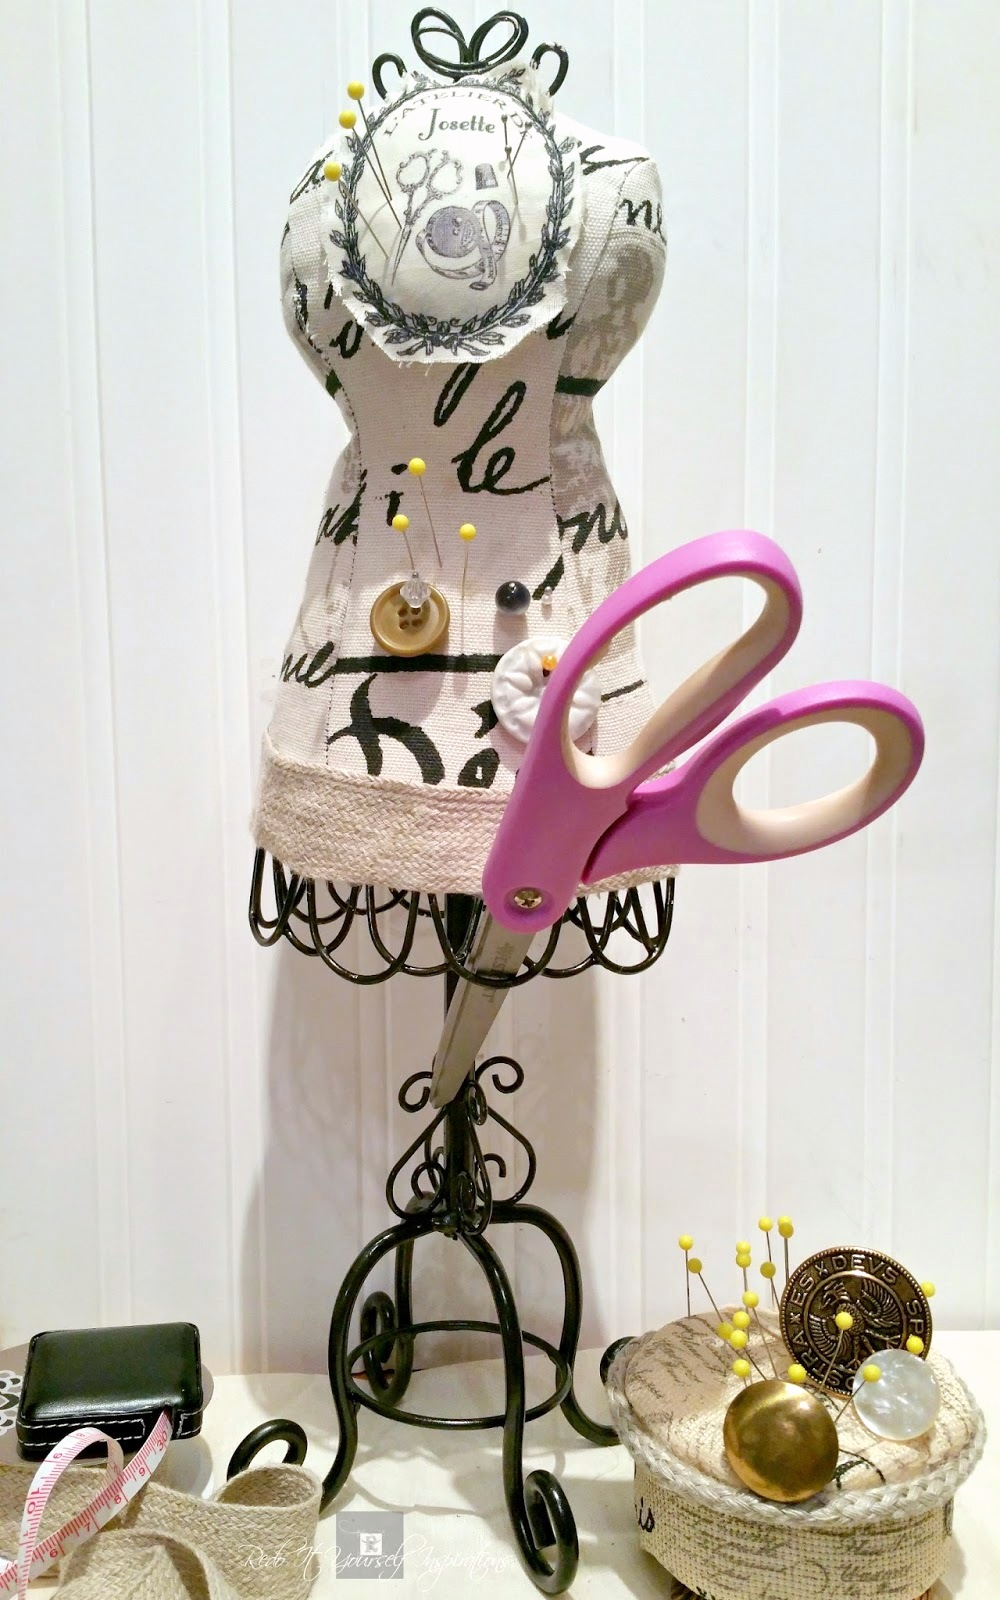 Repurposed dress form jewellery stand into pin cushion, by Do It Yourself Inspirations, featured on Funky Junk Interiors